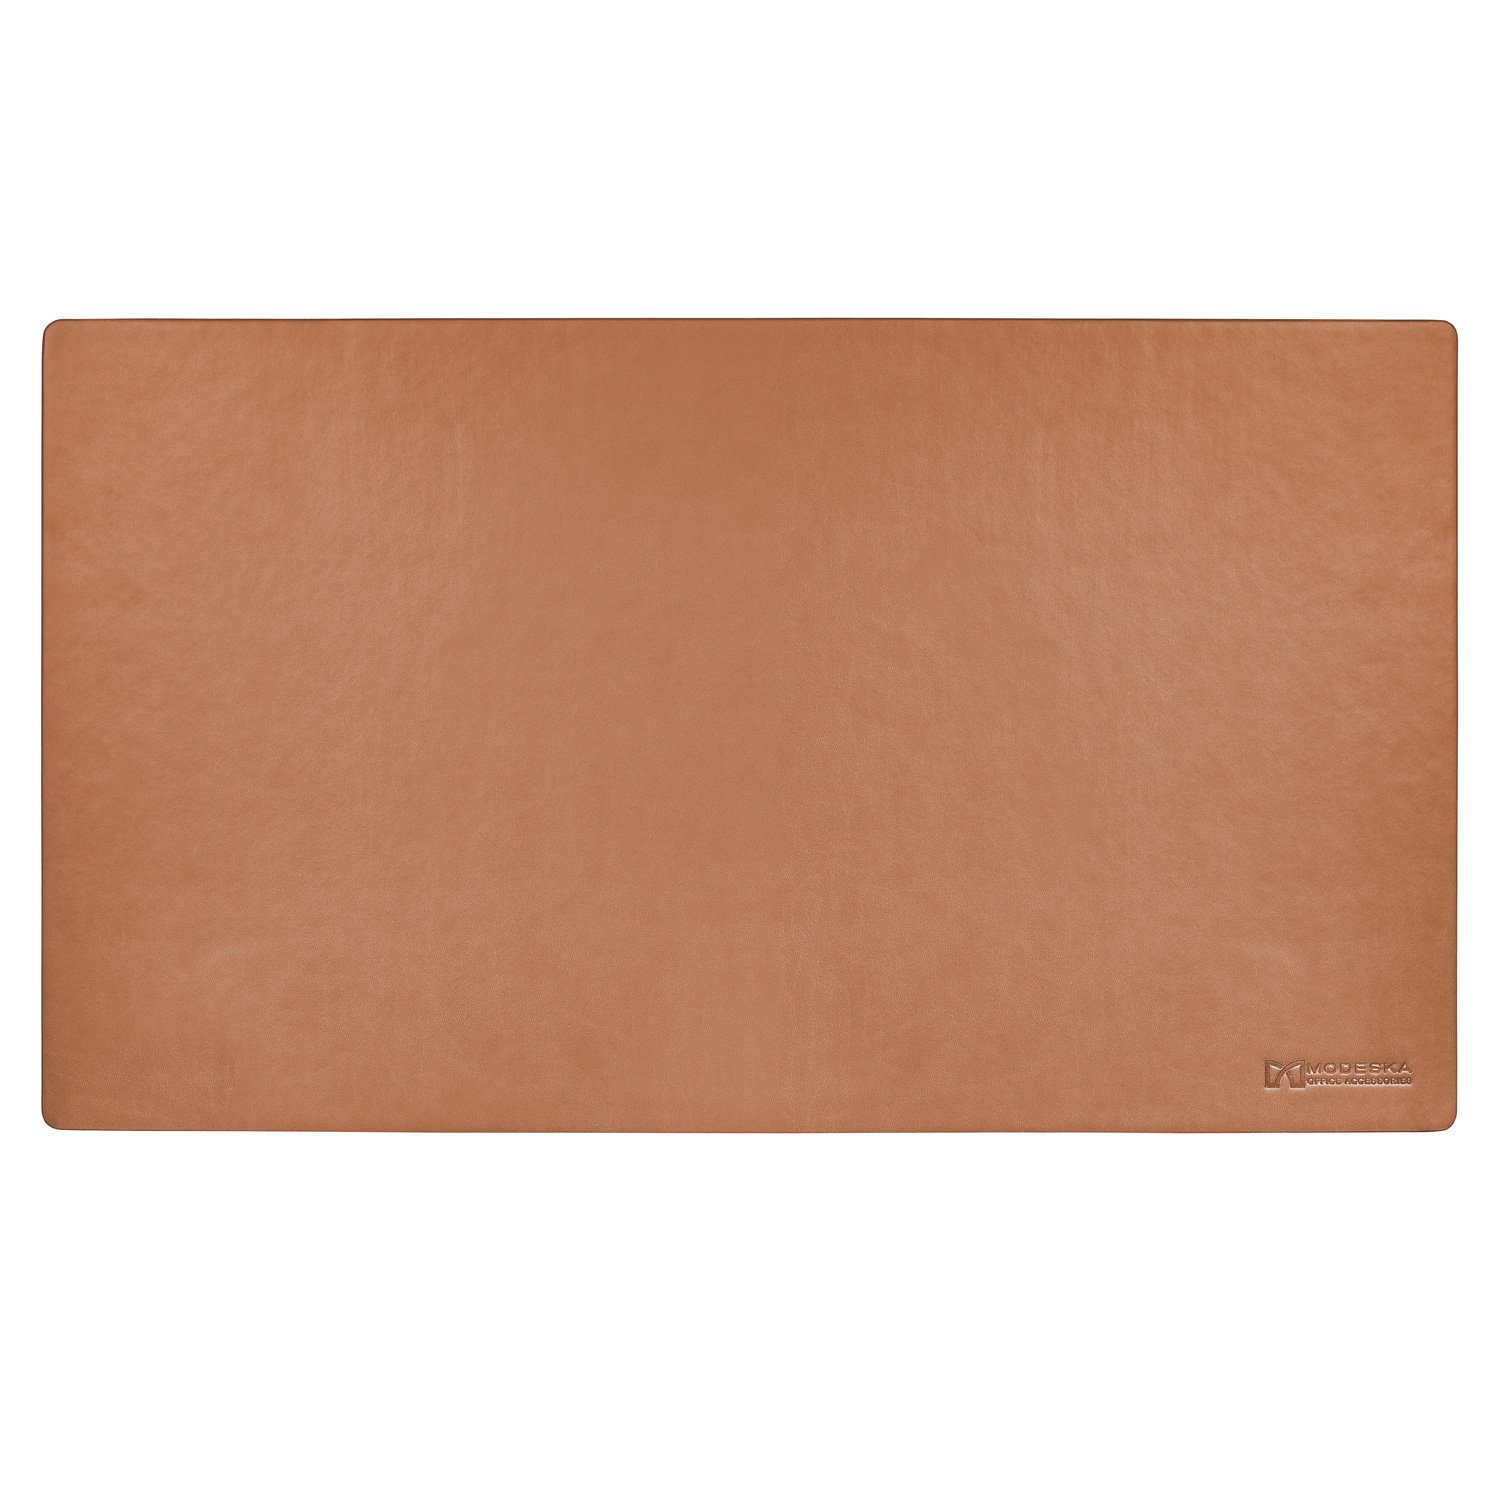 TOP RATED - Modeska 24''x14'' Leather Desk Pad - Executive Blotter and Protective Mat - Mouse Pad - Brown